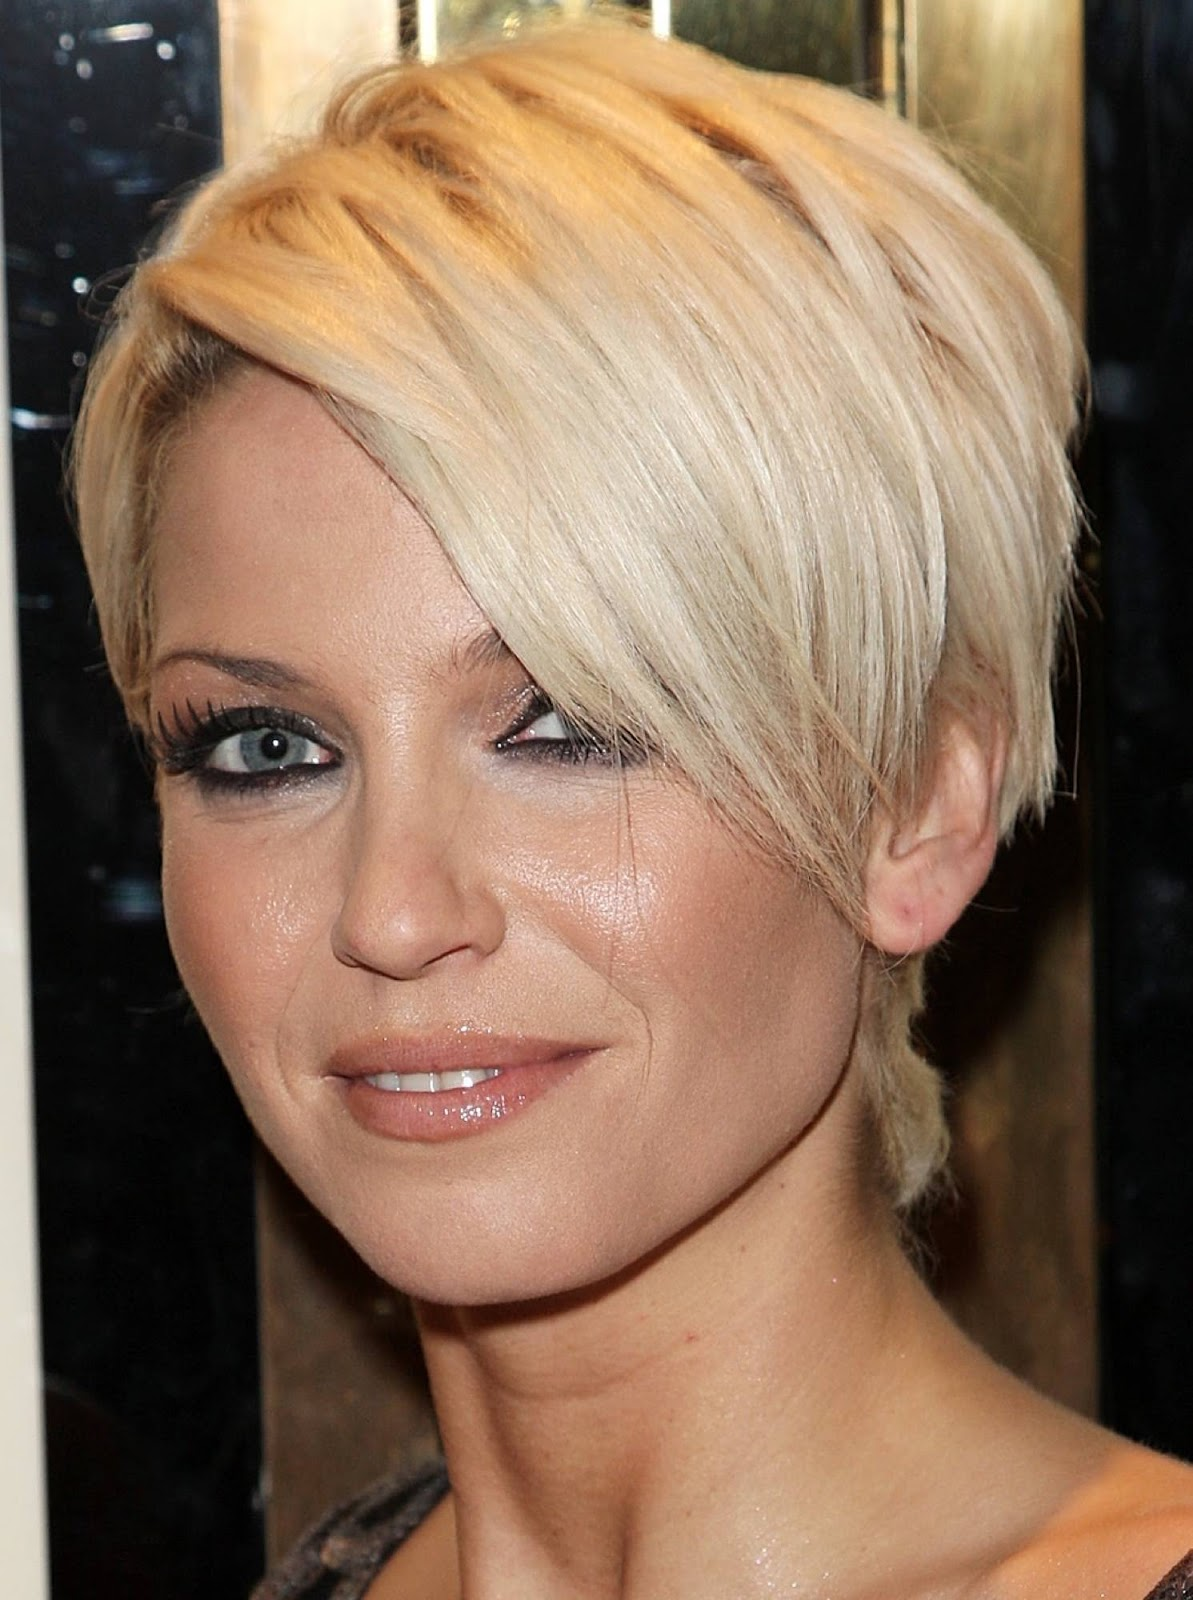 Pleasant Party Hairstyles For Short Hair Medium Hairstyle Fashions Short Hairstyles For Black Women Fulllsitofus